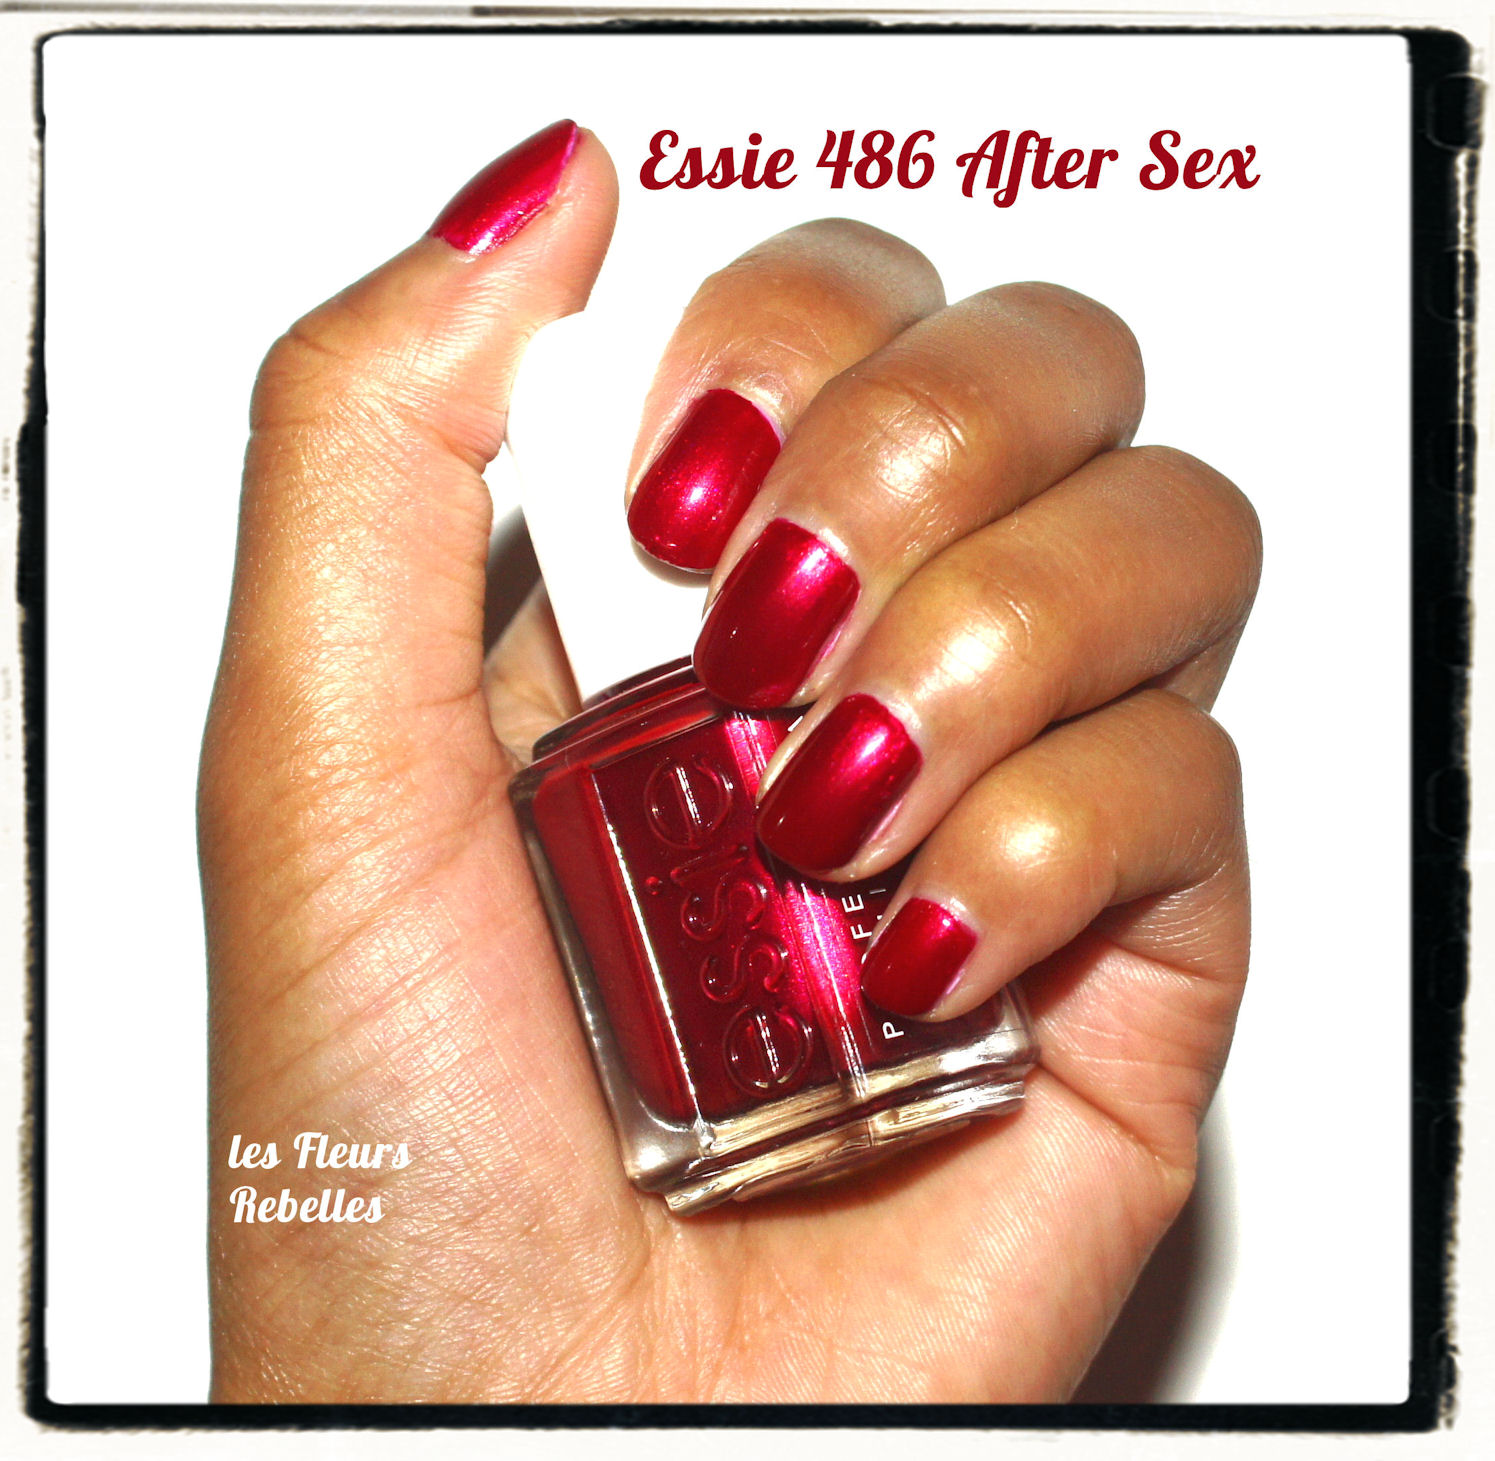 instanails 1 swatches vernis opi kiko essie yves rocher h m mua ysl hema rimmel. Black Bedroom Furniture Sets. Home Design Ideas